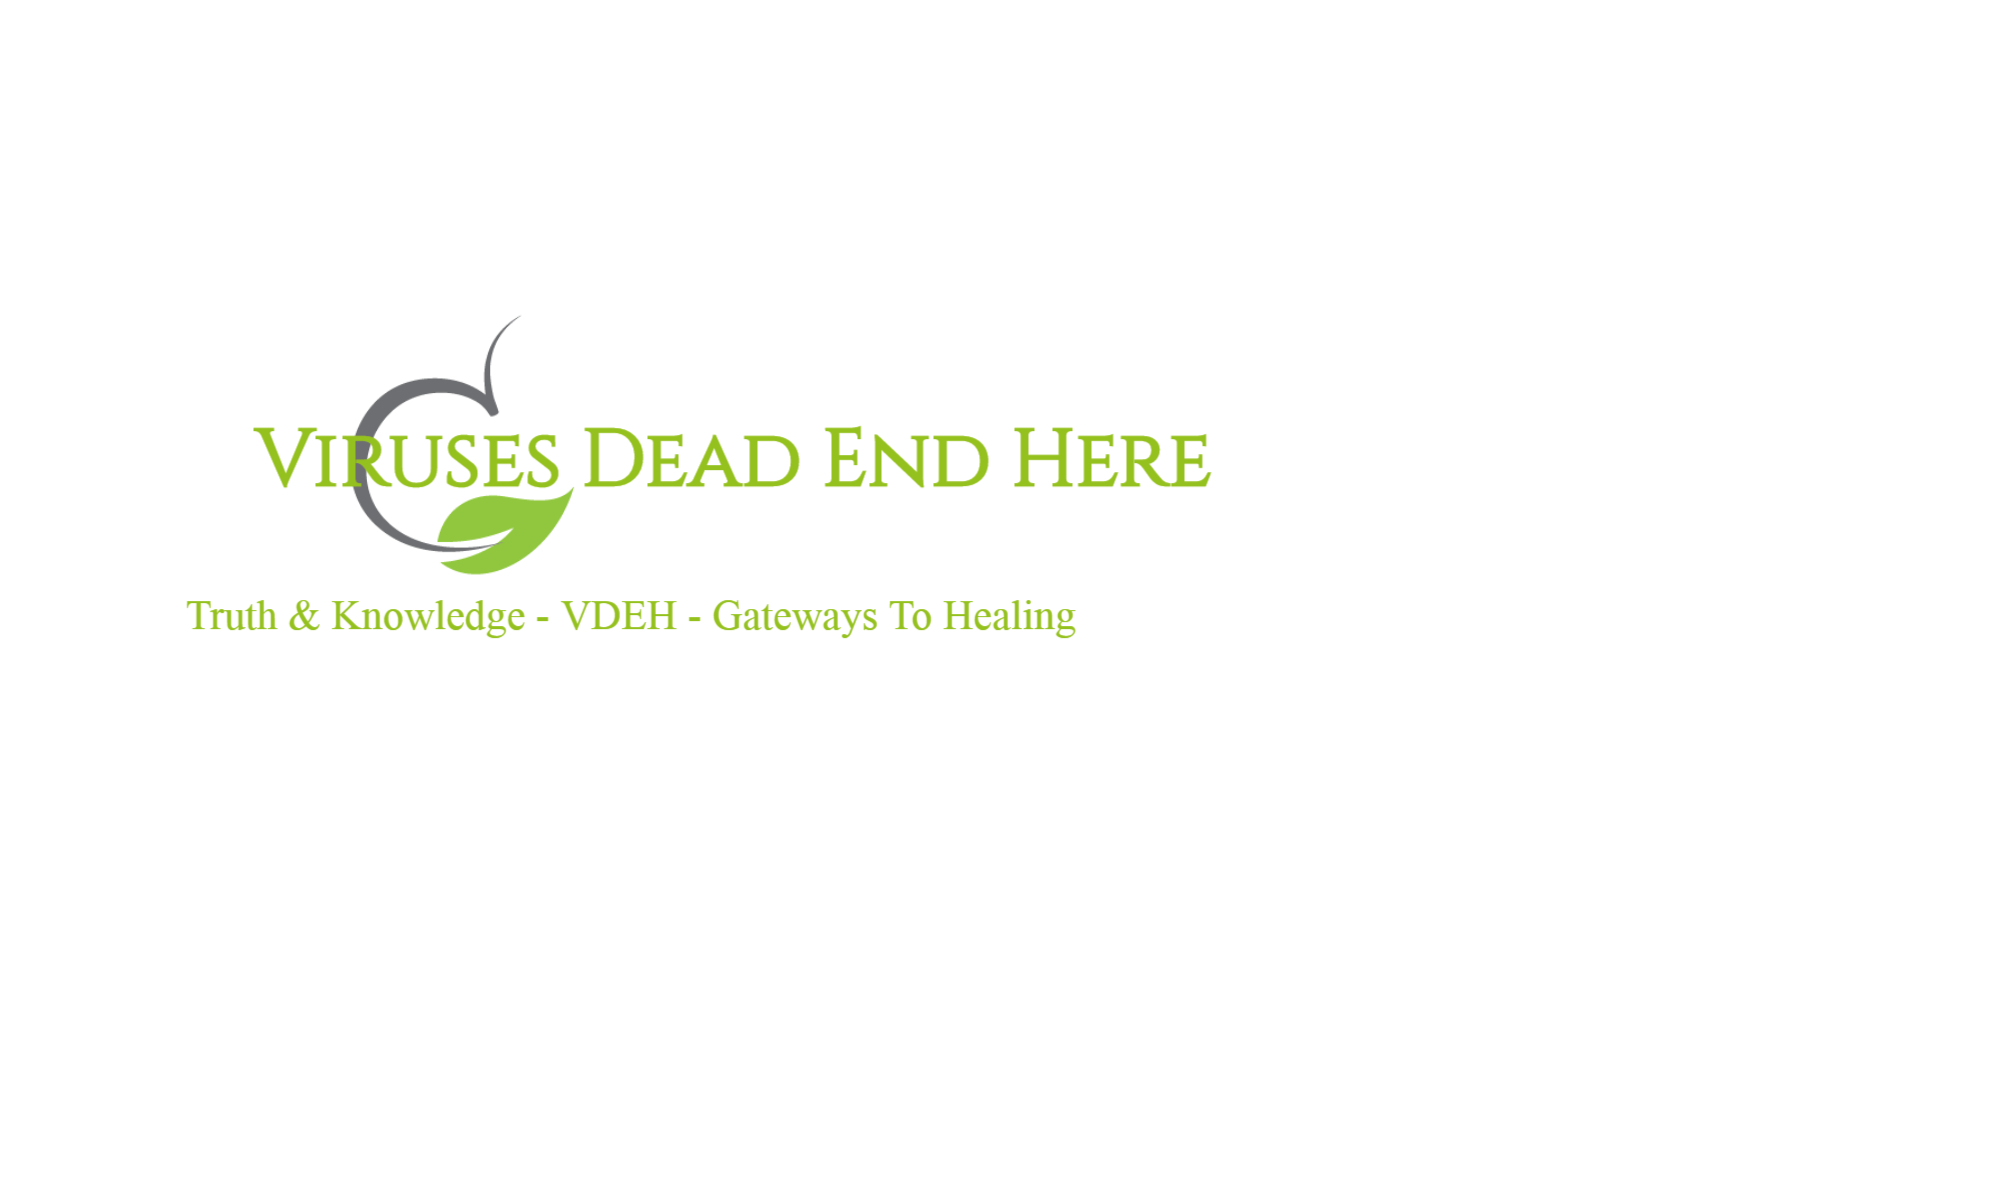 Viruses Dead End Here & Much More